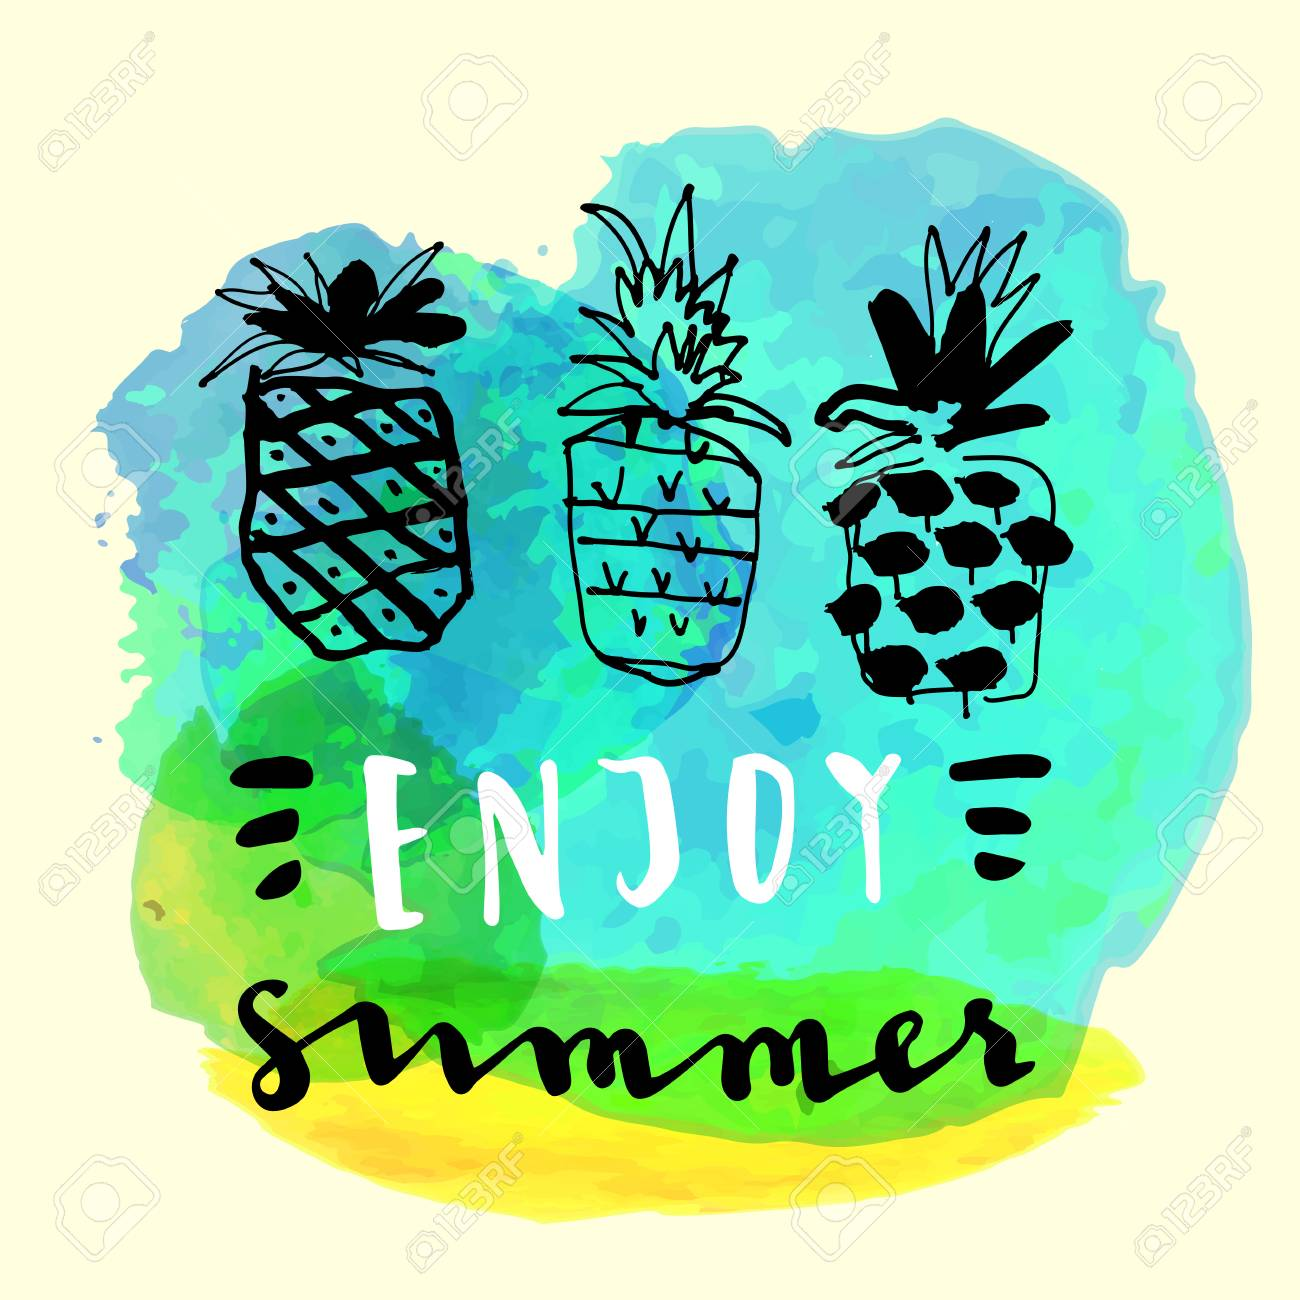 Enjoy Summer. Handwritten Inspirational Summer Quote. Greeting Card With  Pineapples And Watercolor Blot.